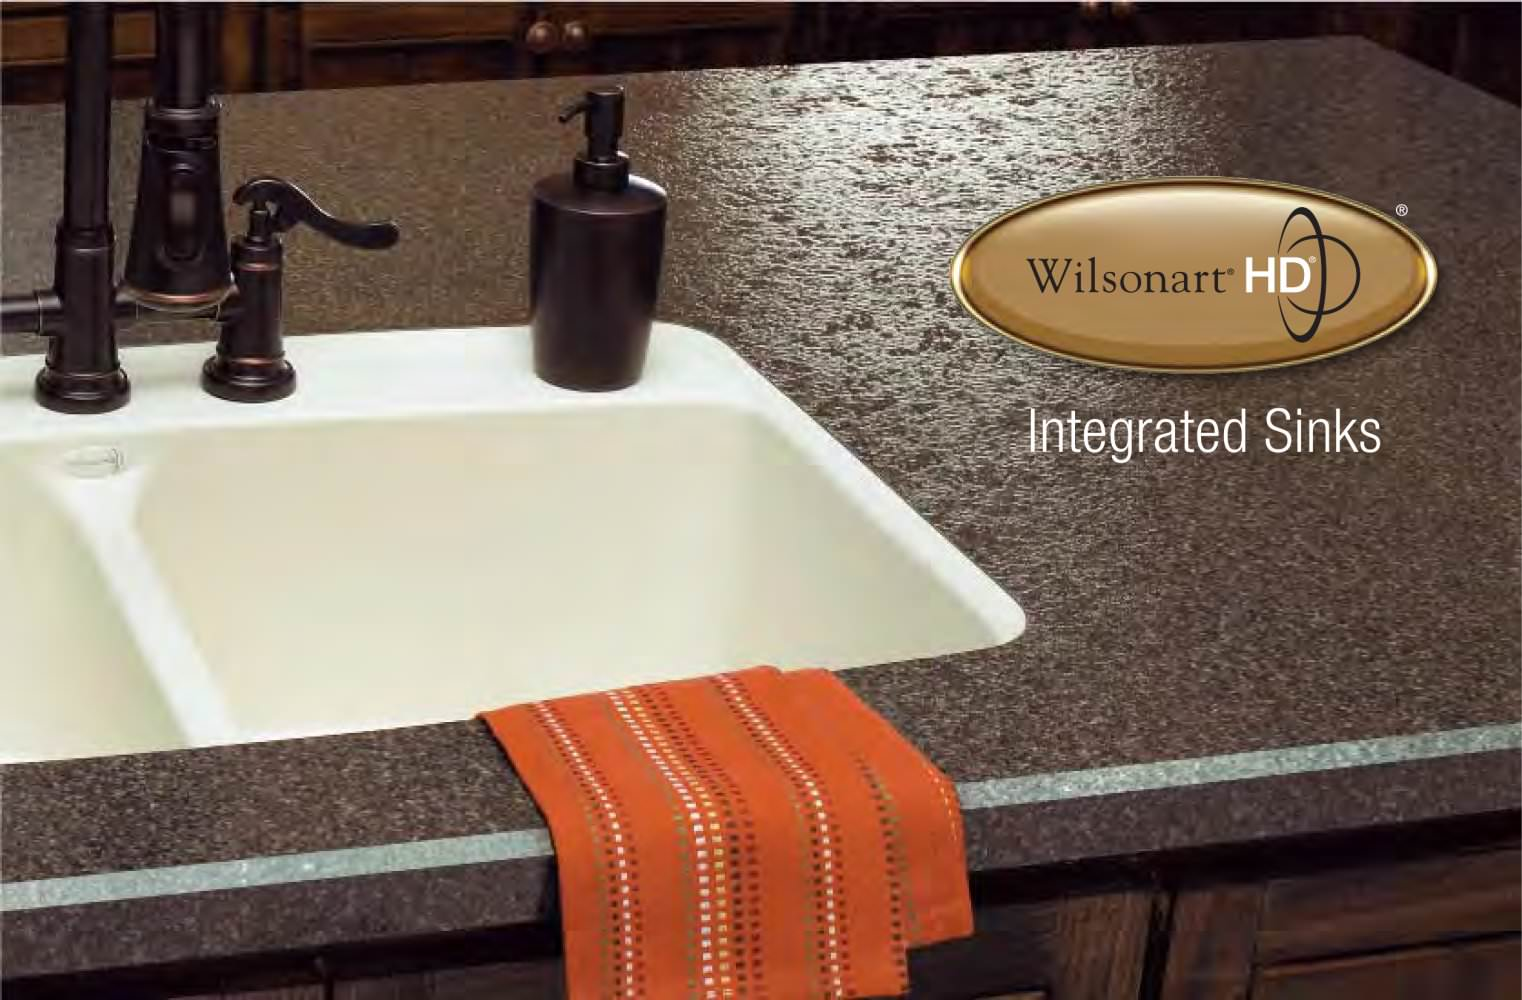 Superior Wilsonart® HD™ Intergrated Sinks Brochure   1 / 5 Pages